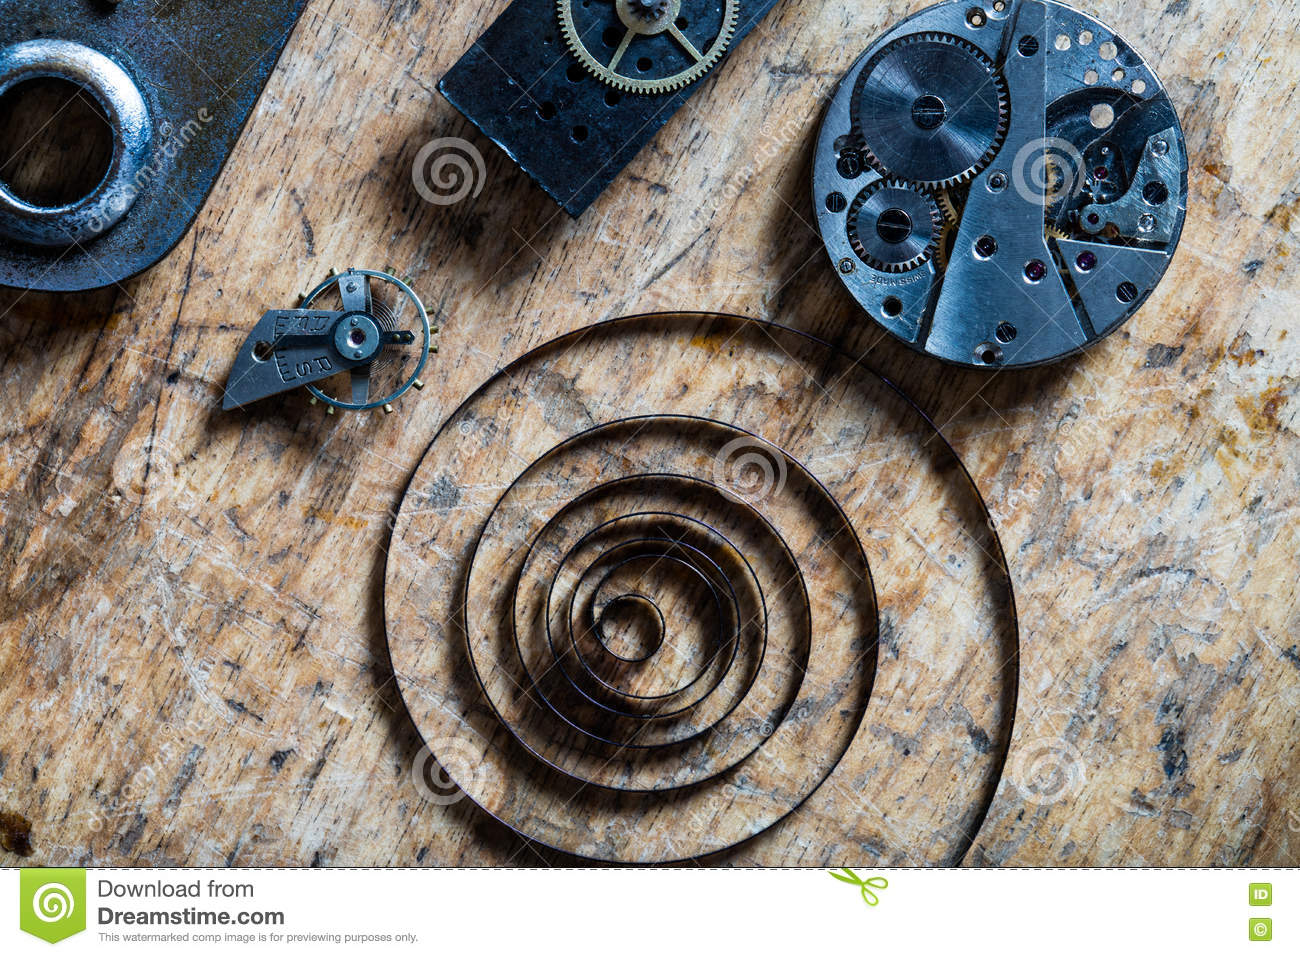 Spring, balance wheel and clockworks on a table